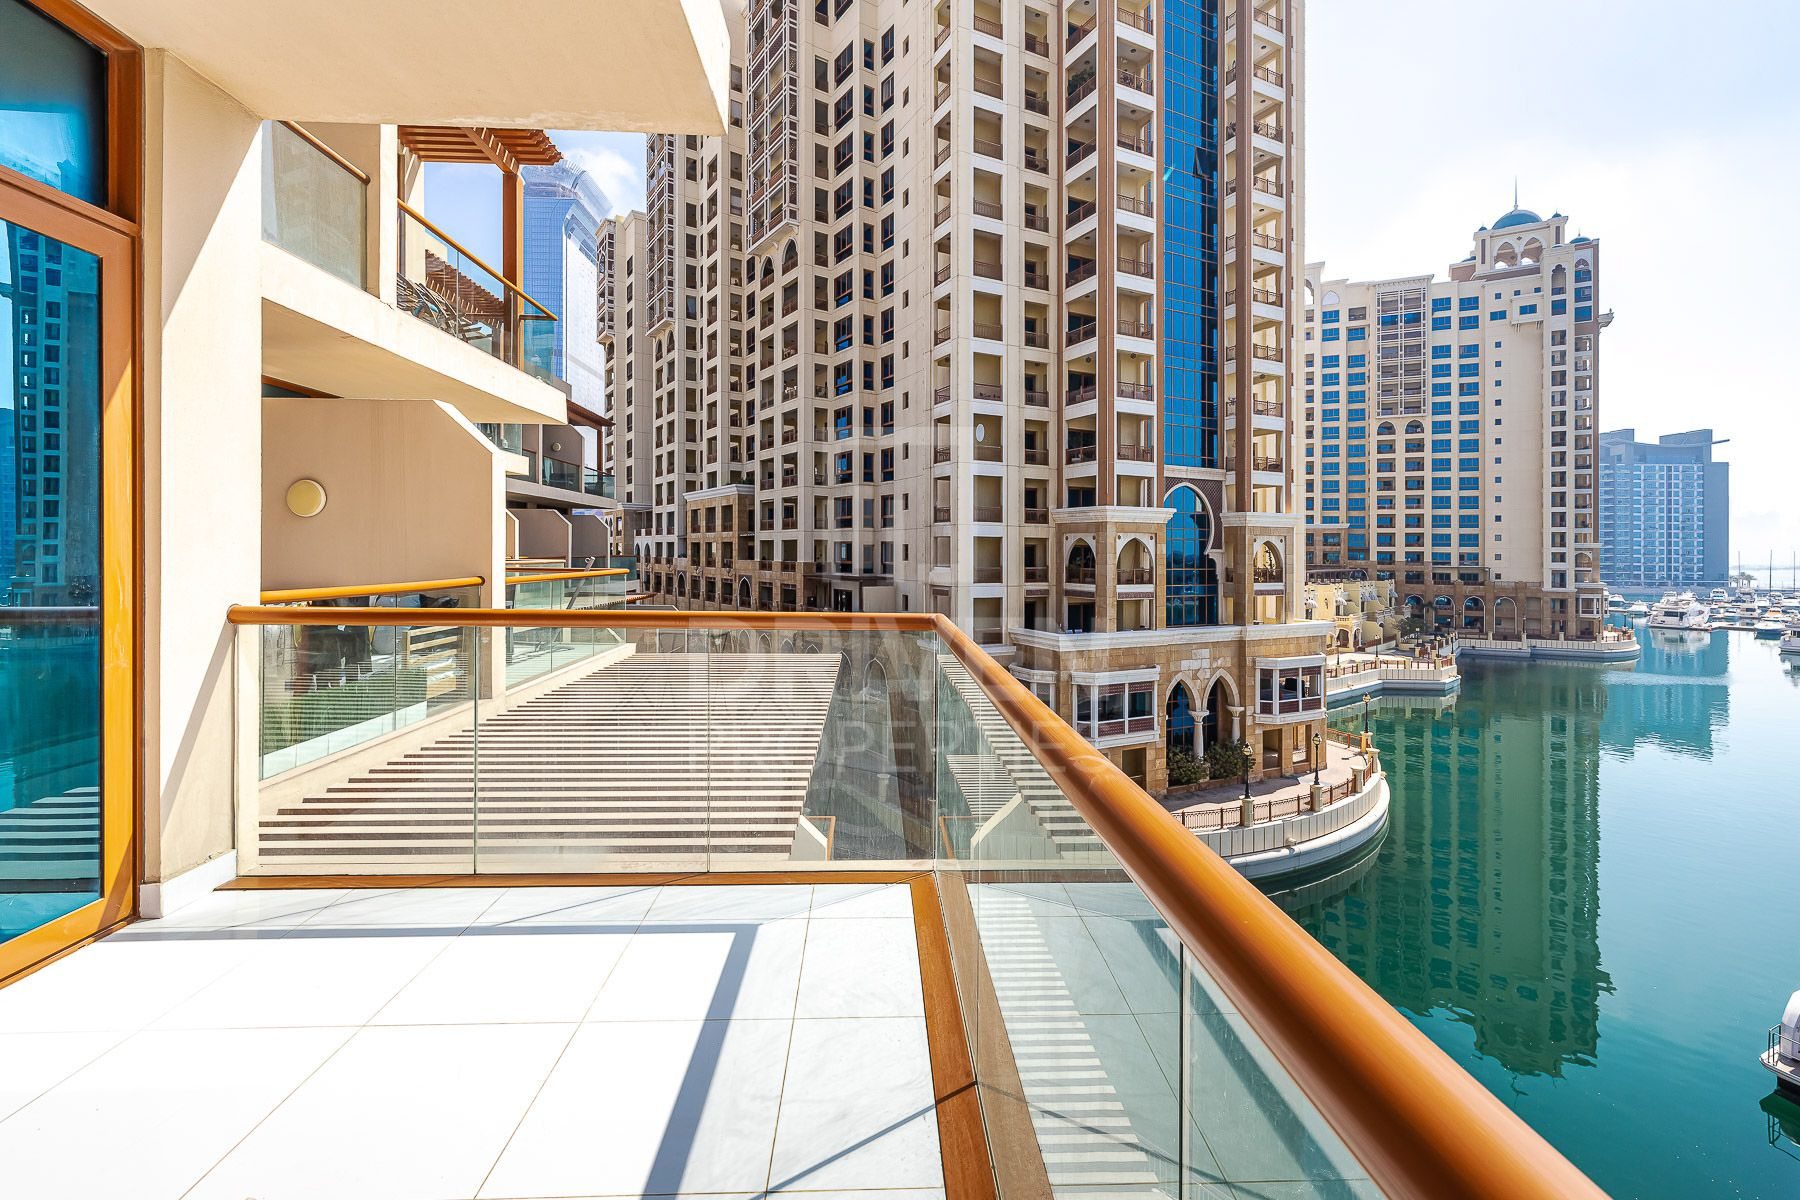 Studio for Rent in Palm Views West - Palm Jumeirah